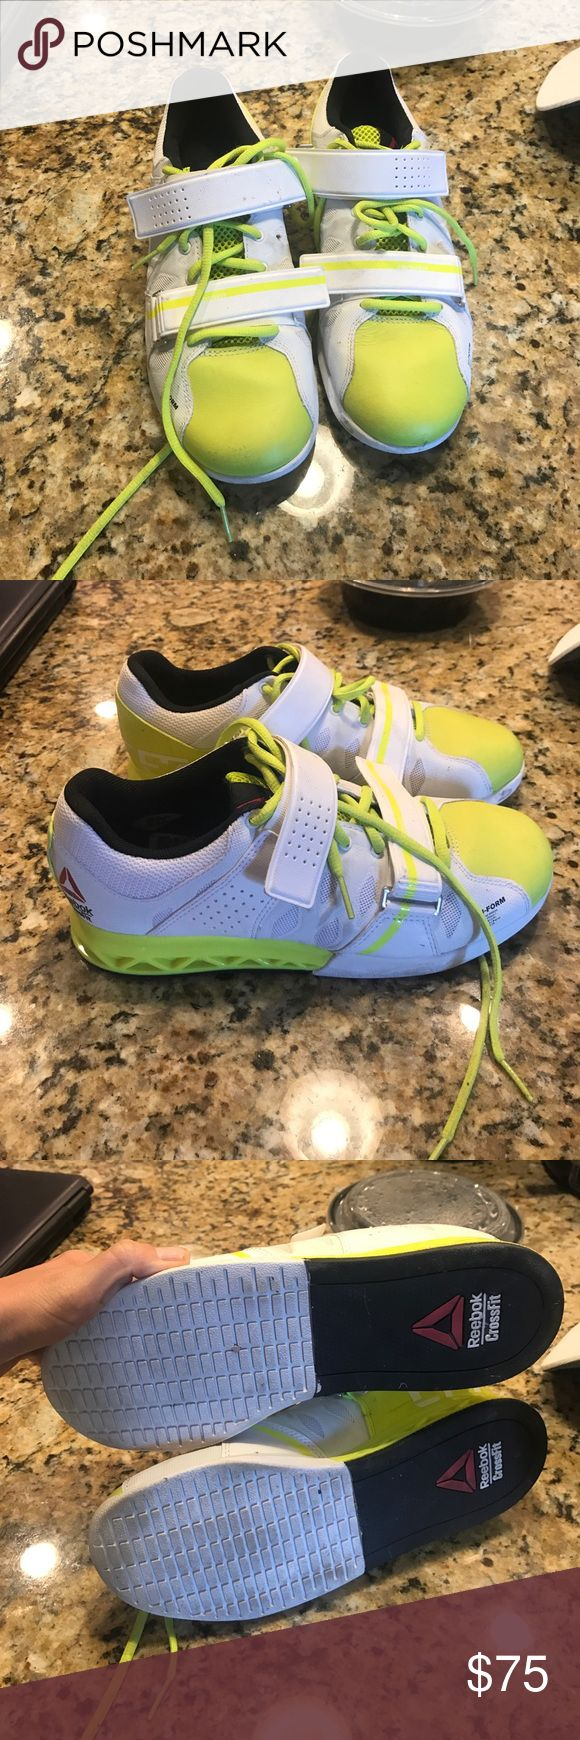 Reebok crossfit lifter 2.0 Size 8 reebok crossfit lifter 2.0 lifting shoes. Worn lightly. Never worn outside the gym. Reebok Shoes Athletic Shoes